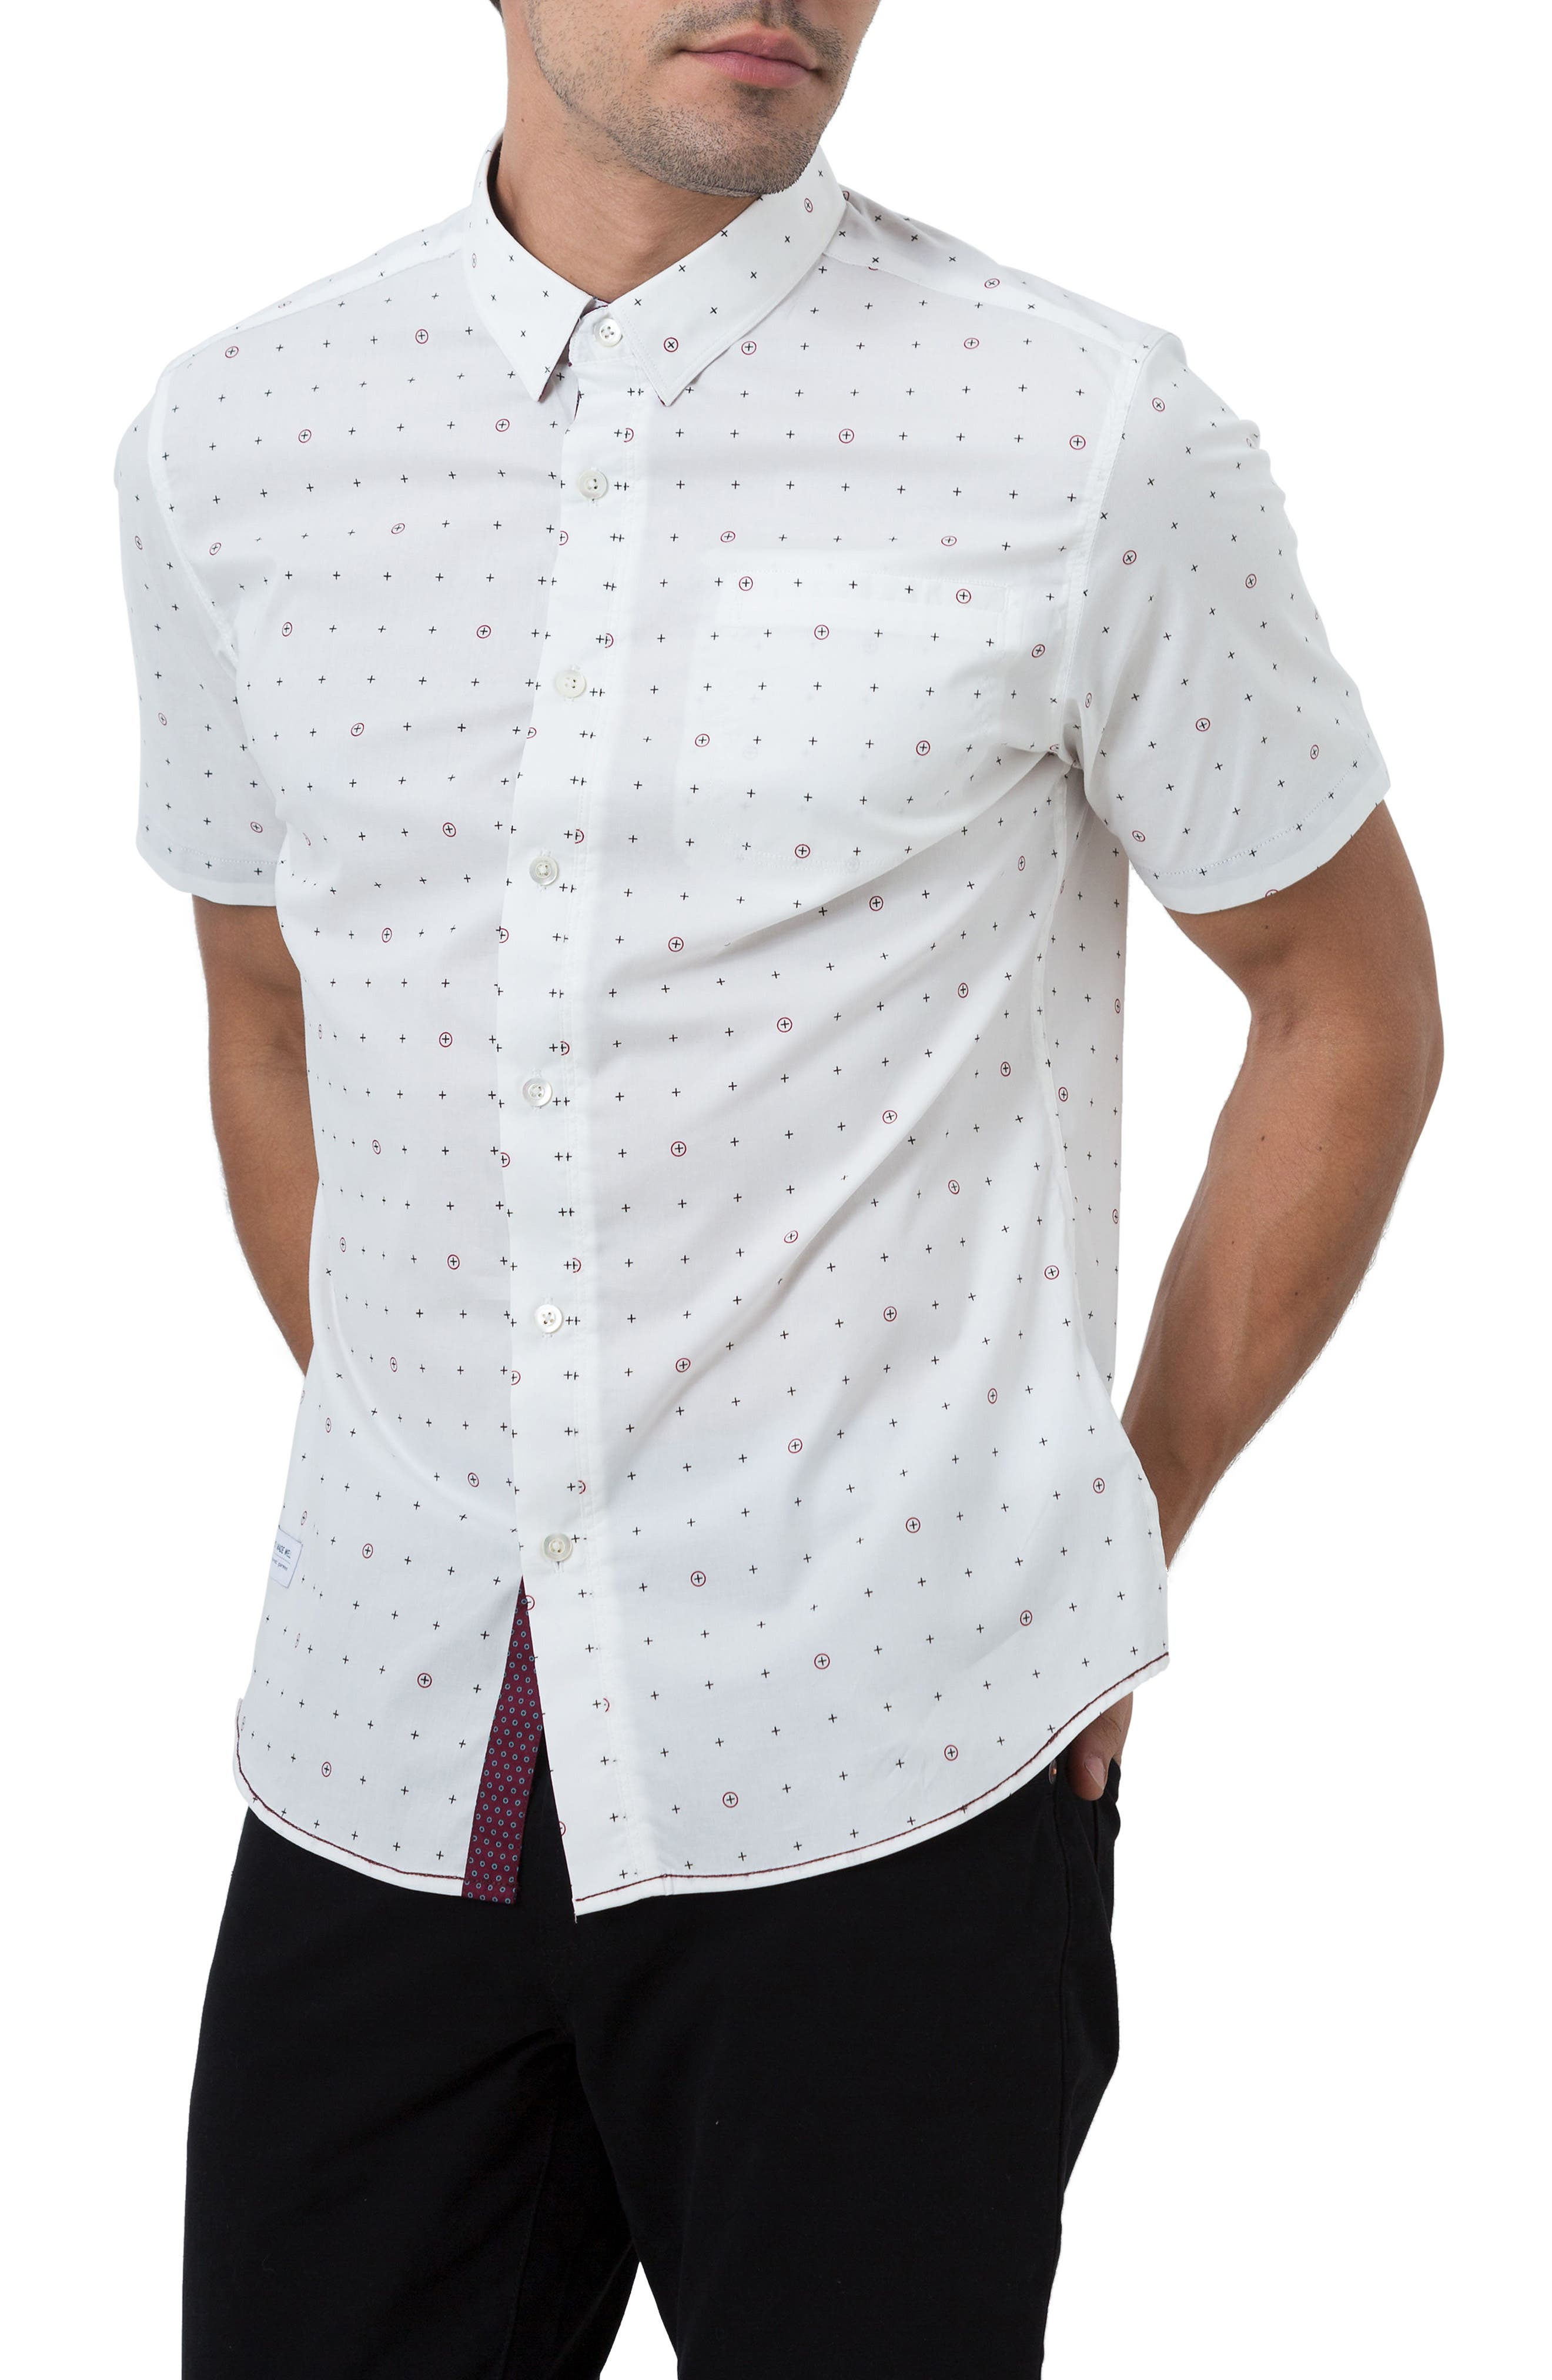 Holiday in Spain Woven Shirt,                         Main,                         color, 109